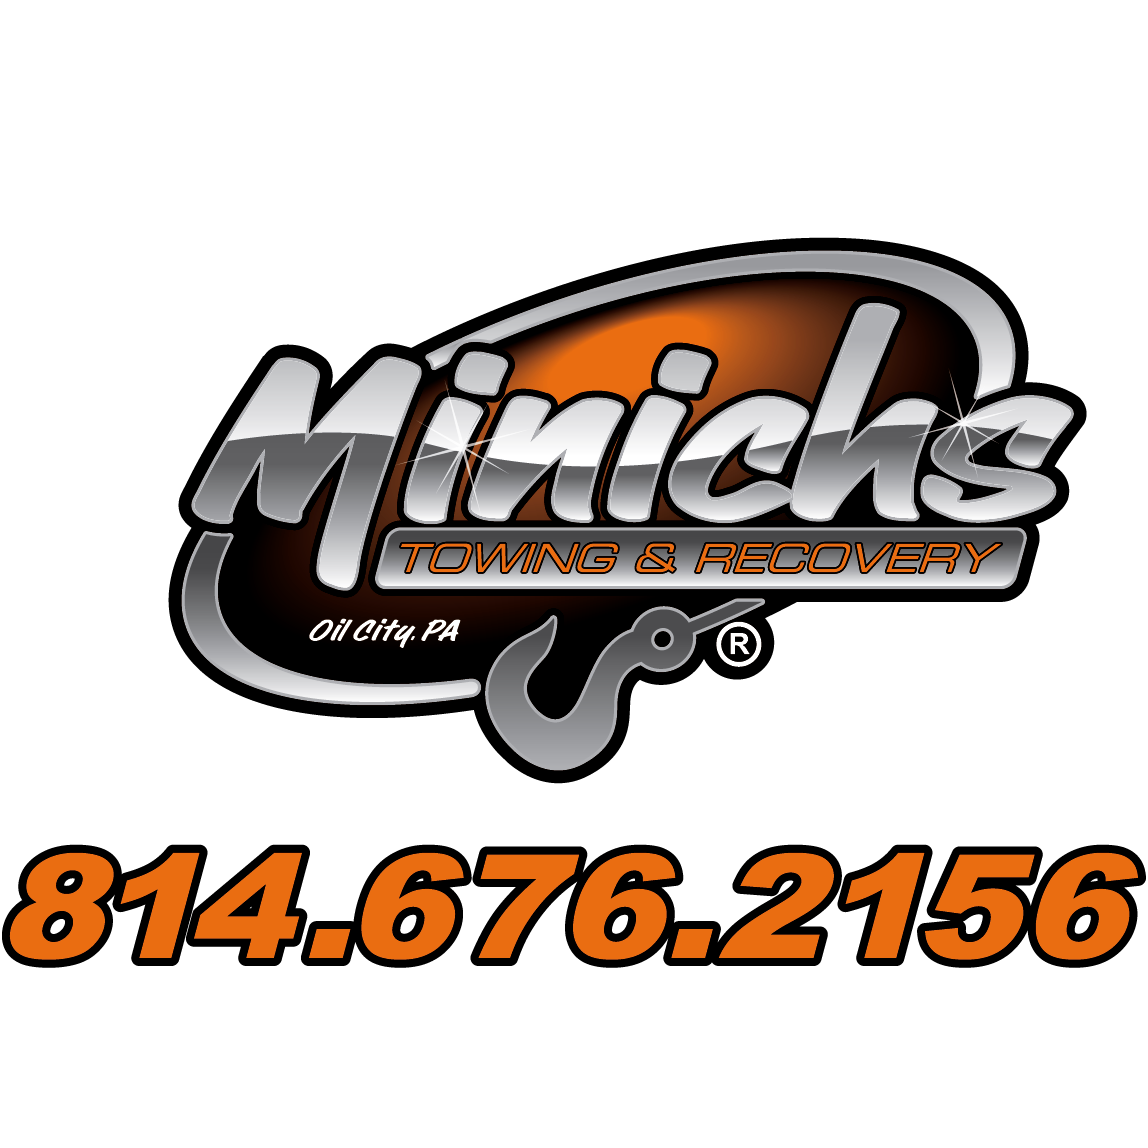 Minichs Towing & Recovery